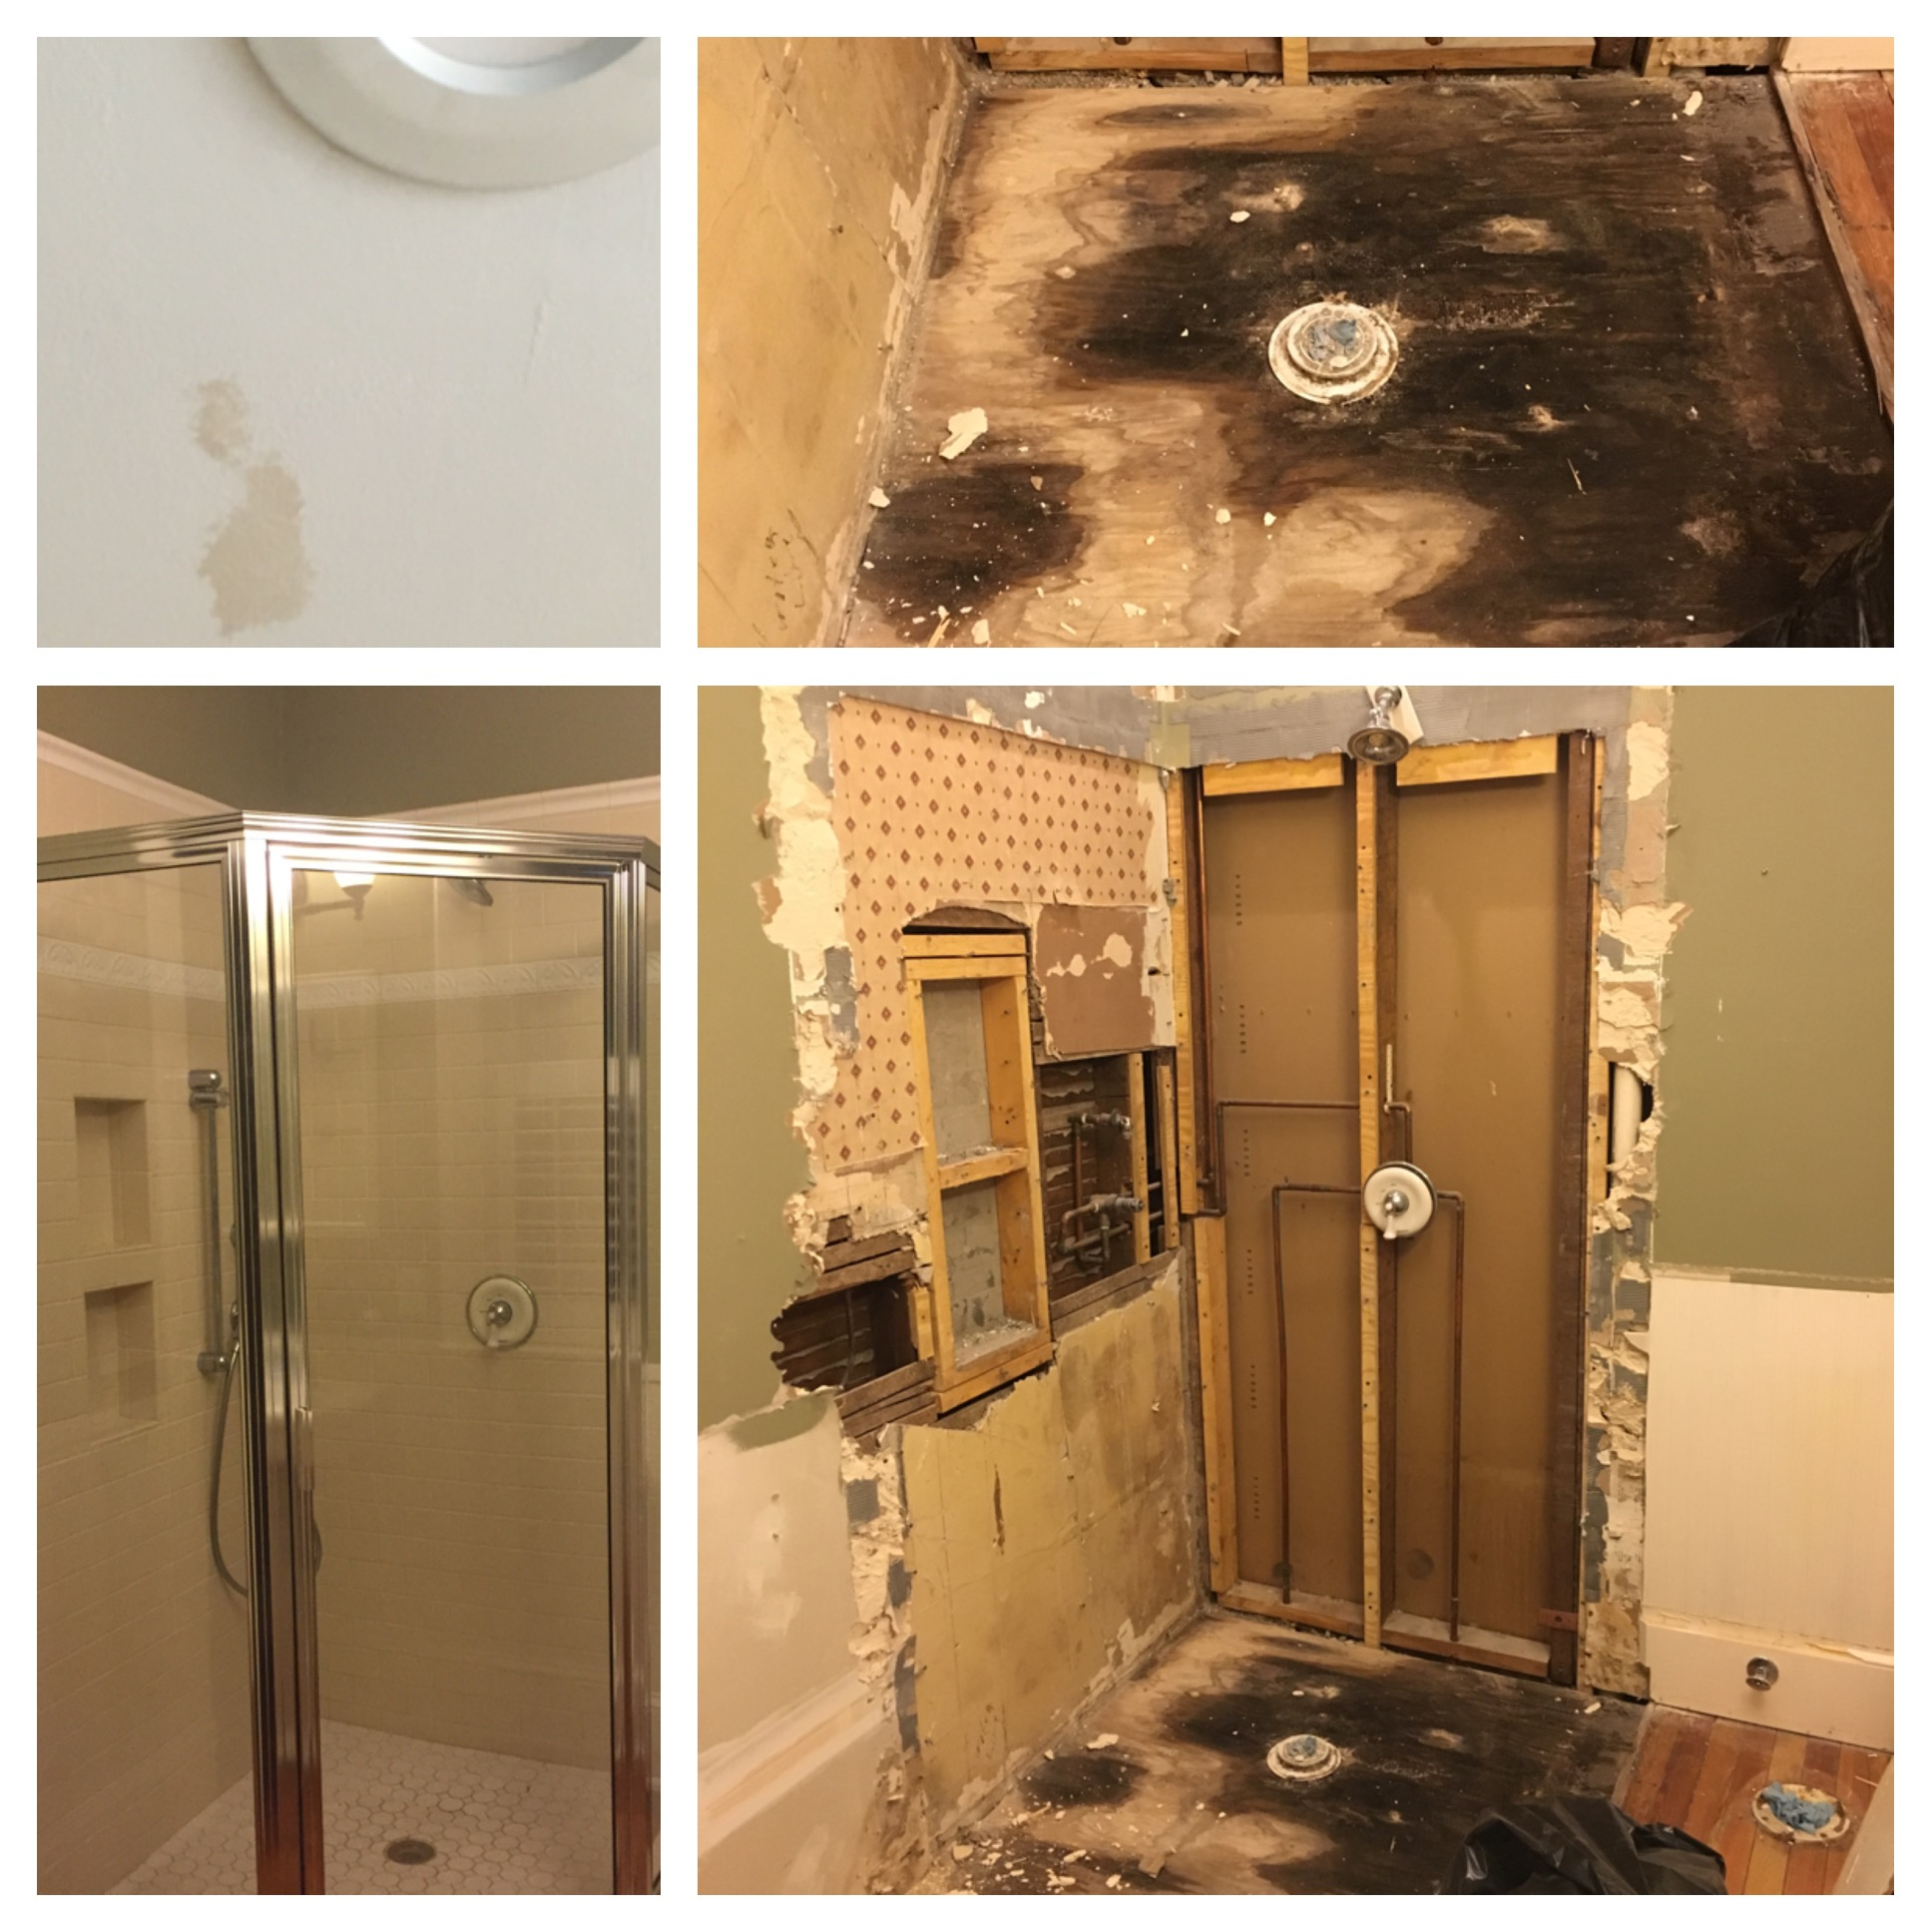 The shower before and after demo.